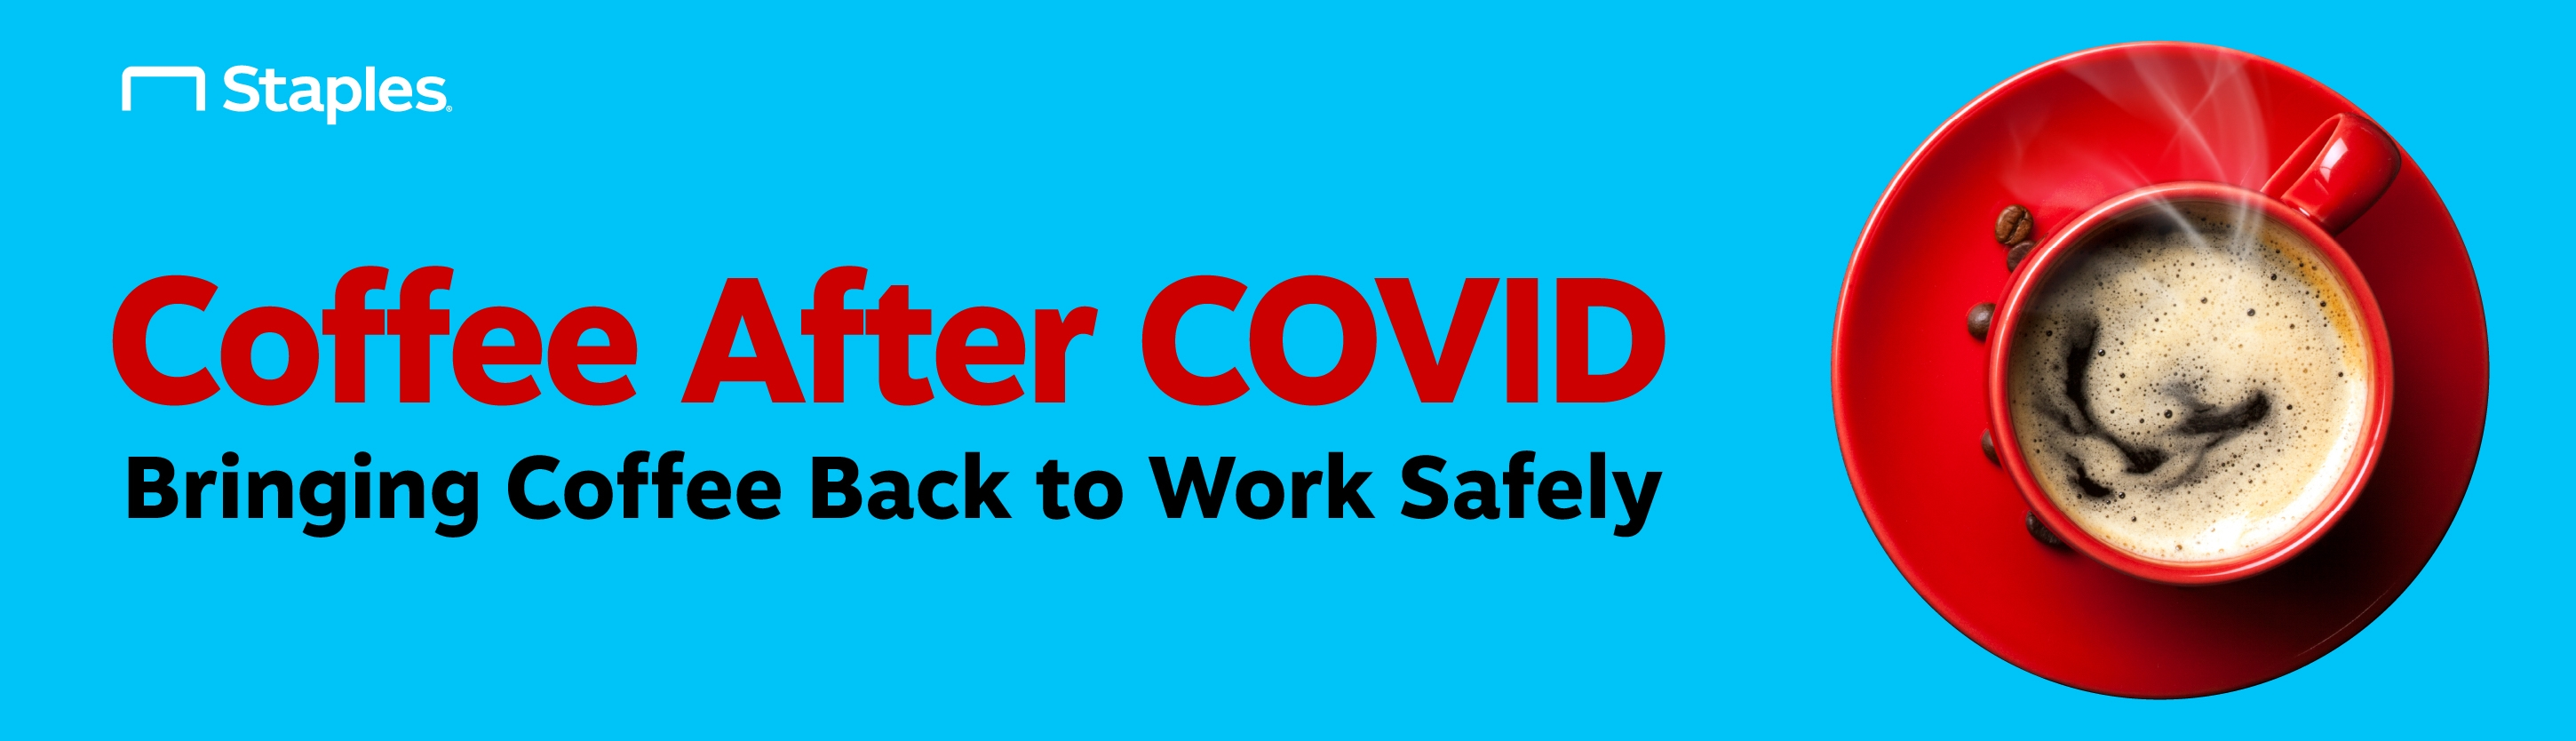 """Banner which reads: """"Coffee After COVID Bringing Coffee Back to Work Safely"""""""